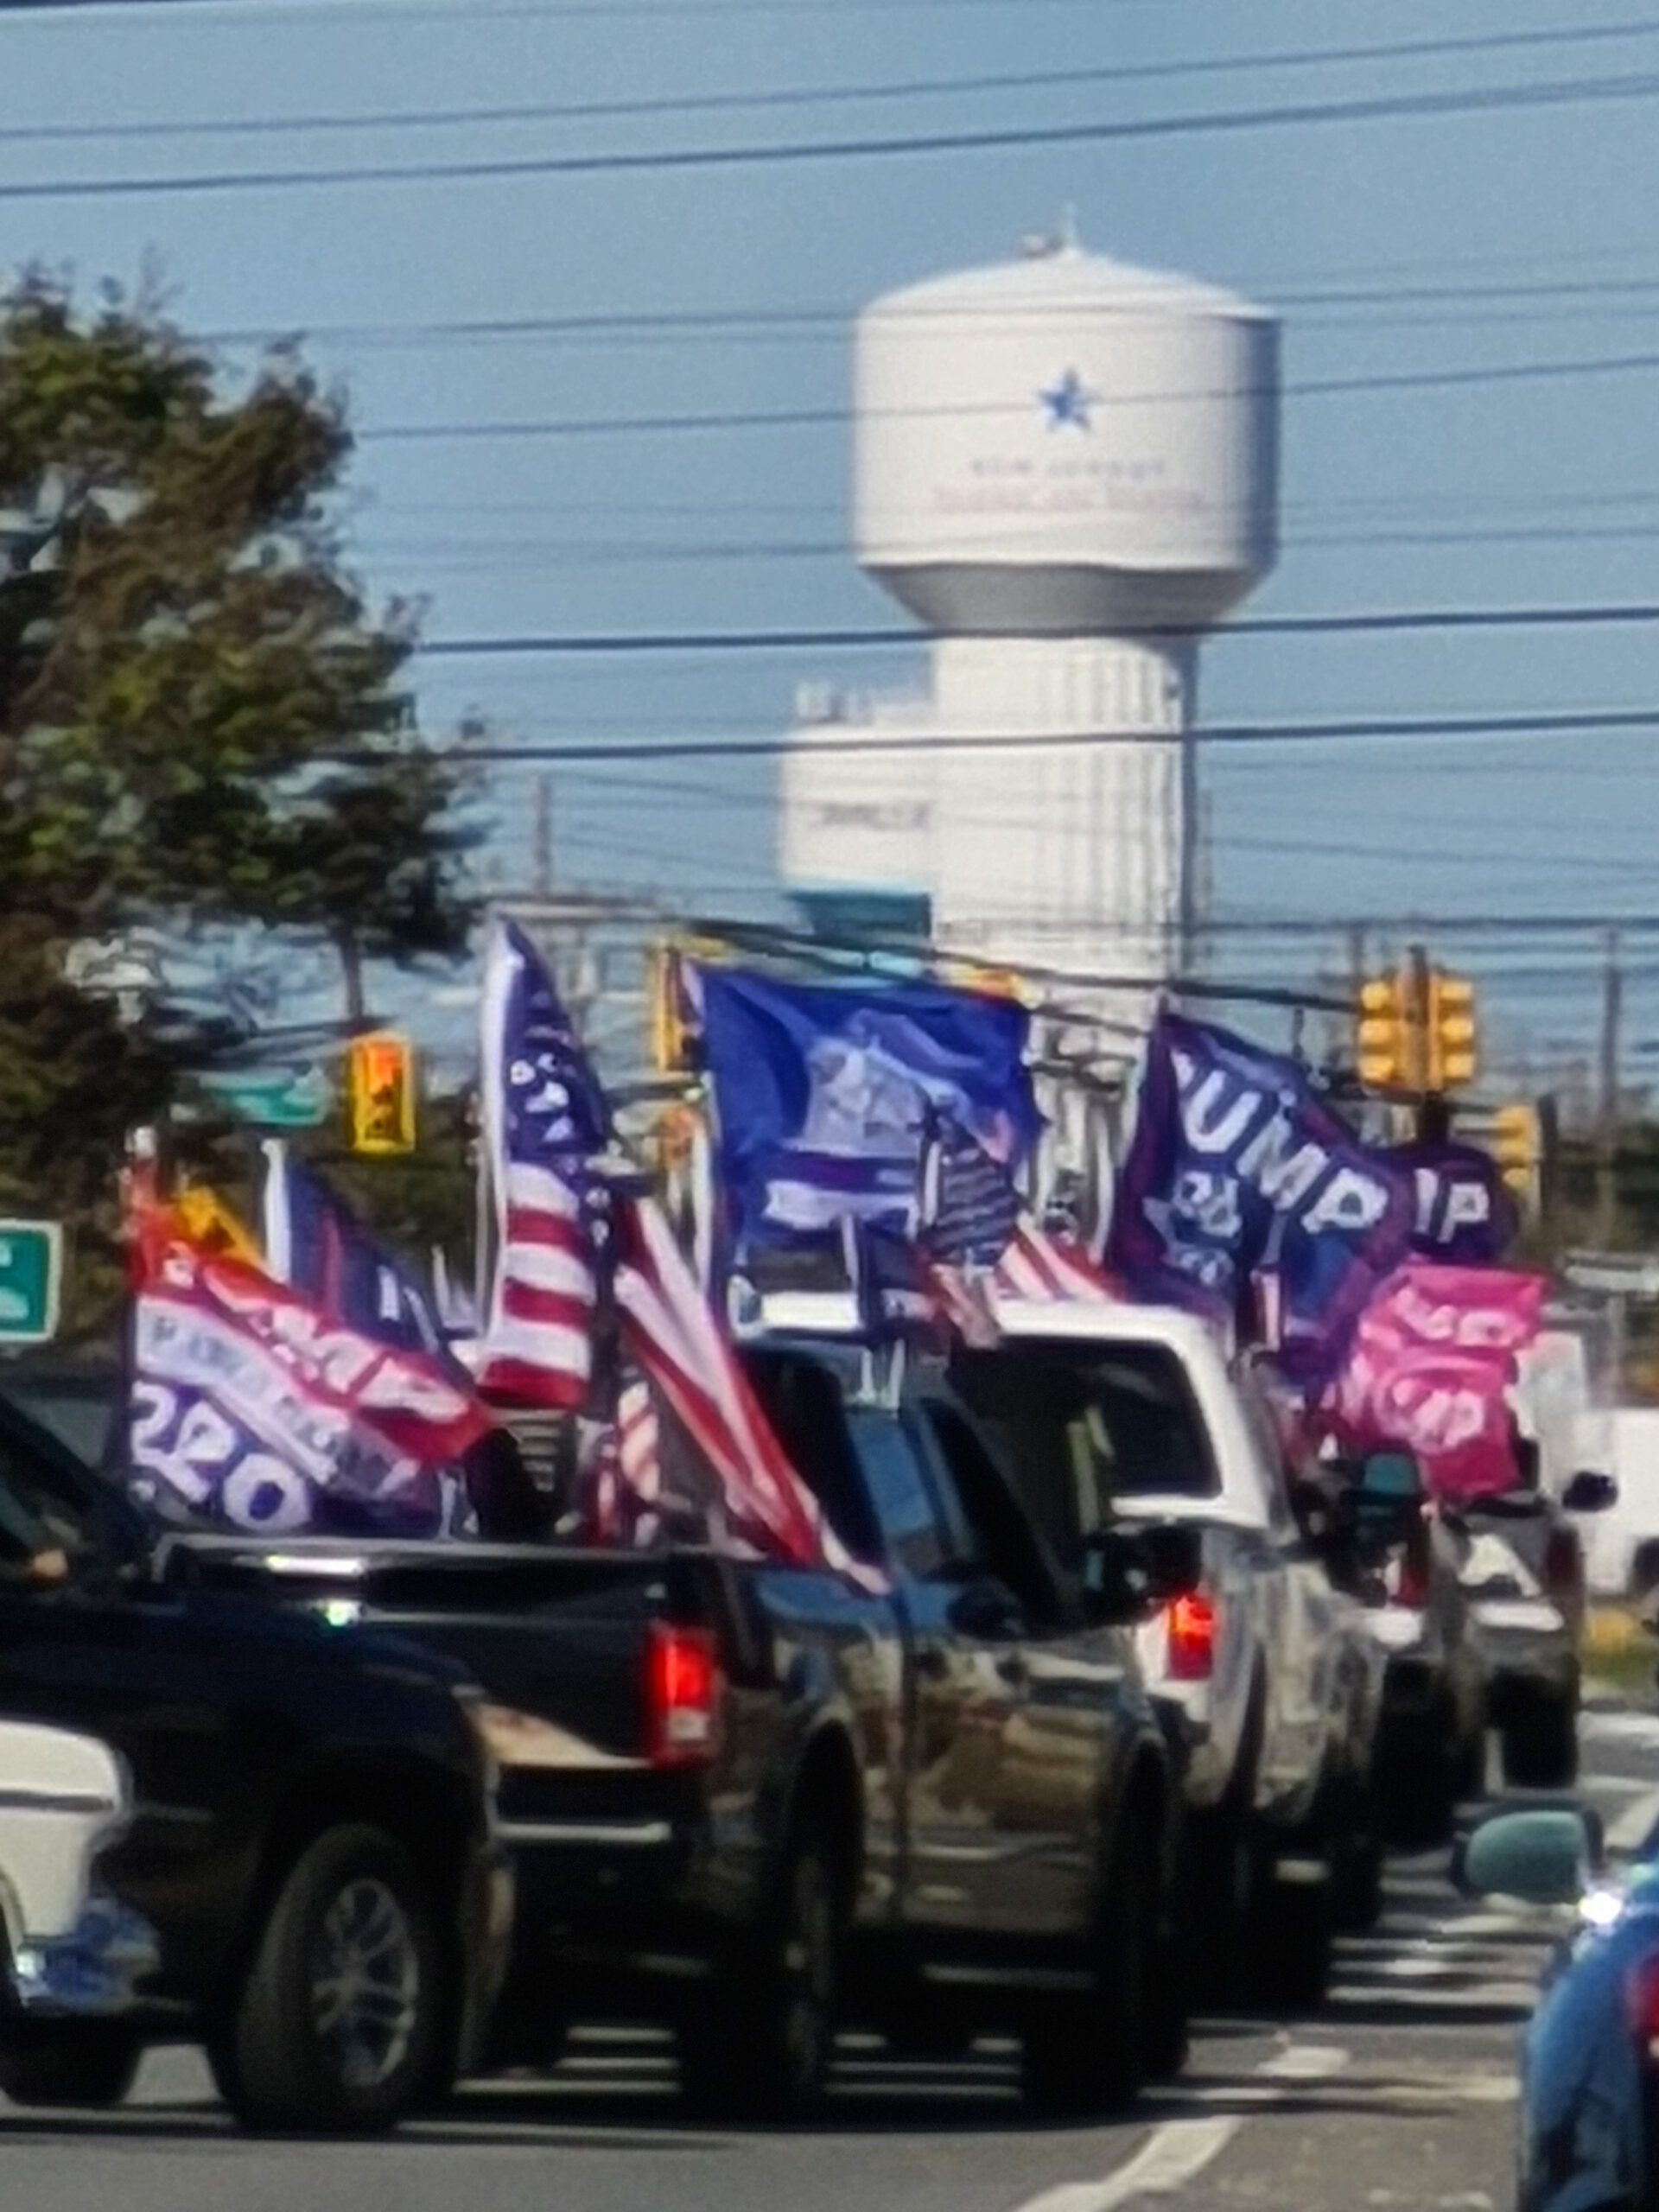 TRUMP RALLY COMES TO SEASIDE HEIGHTS